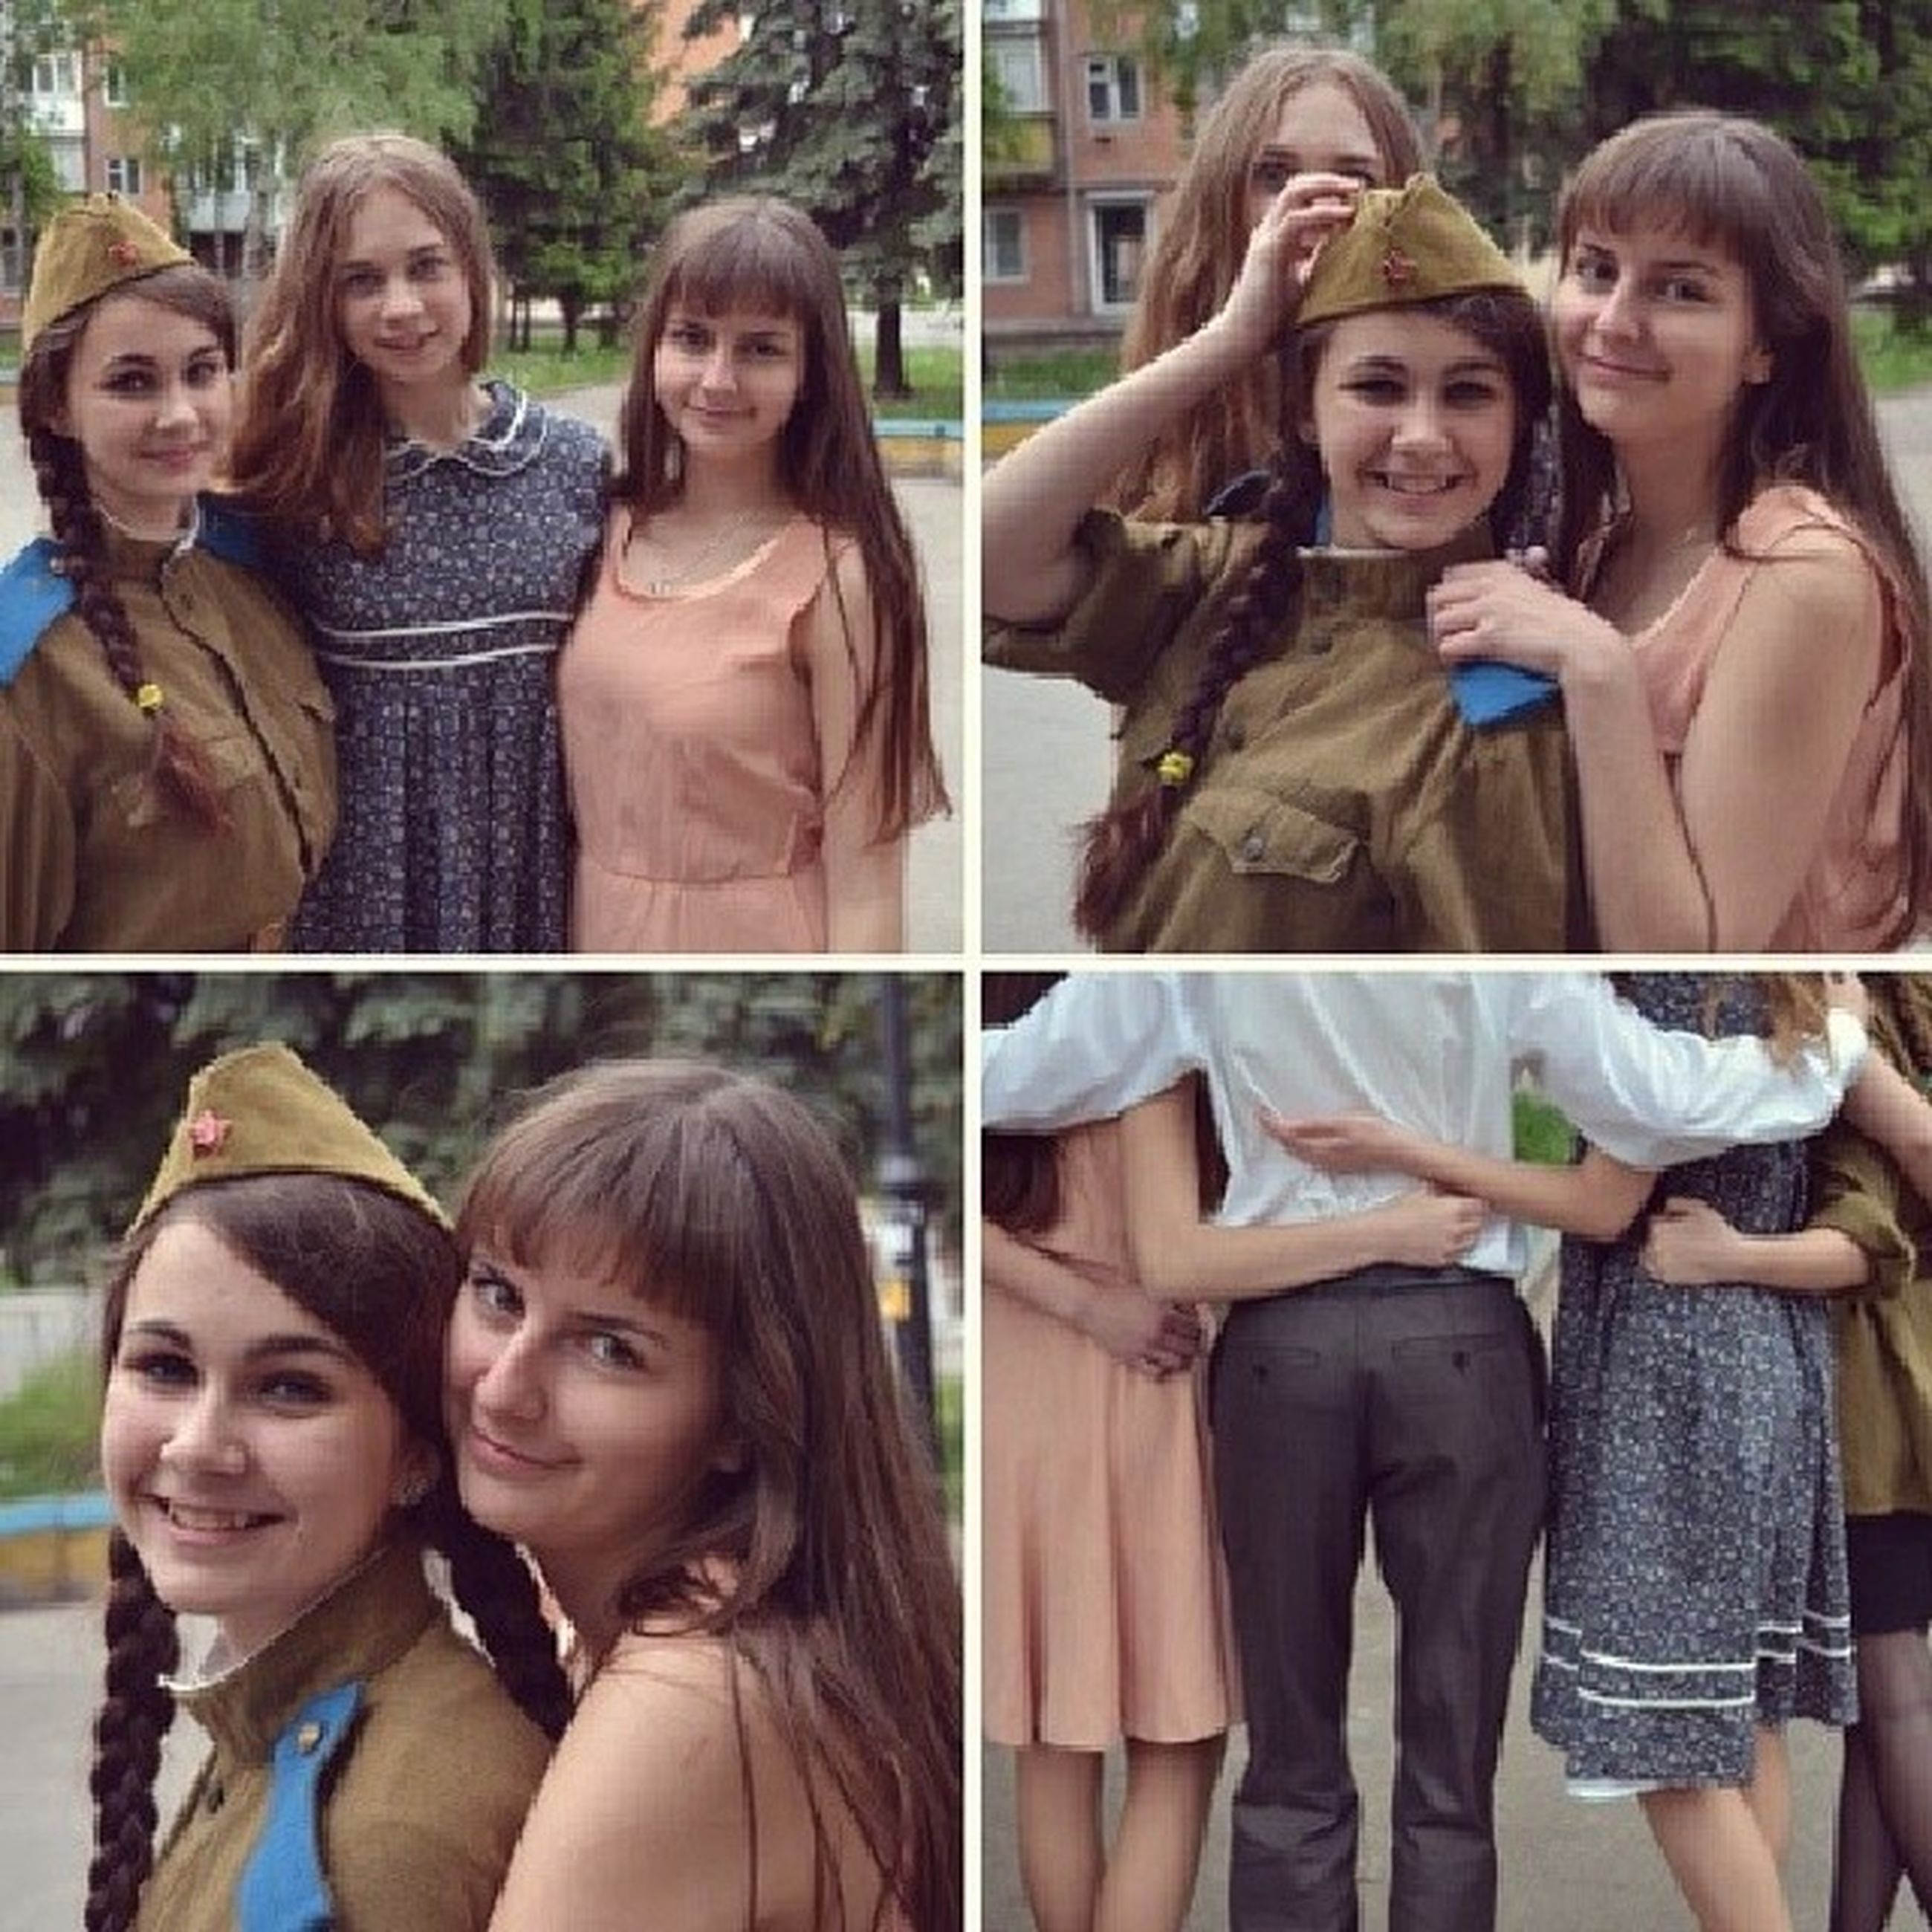 togetherness, bonding, lifestyles, young adult, love, person, smiling, portrait, happiness, young women, leisure activity, friendship, looking at camera, casual clothing, front view, family, toothy smile, sibling